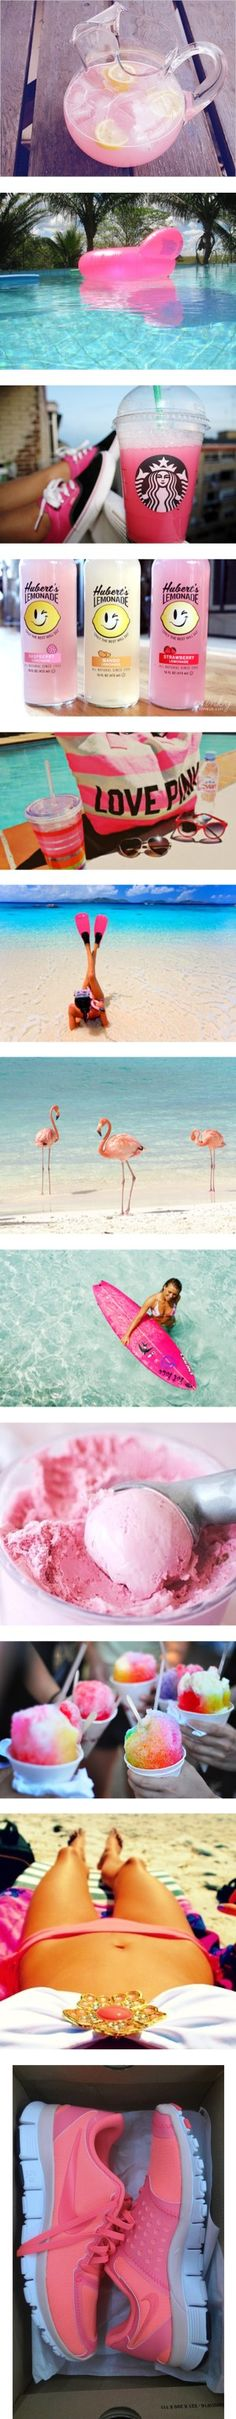 """""""SUMMER PiCTURES // ♥"""" by the-tip-girly ❤ liked on Polyvore"""